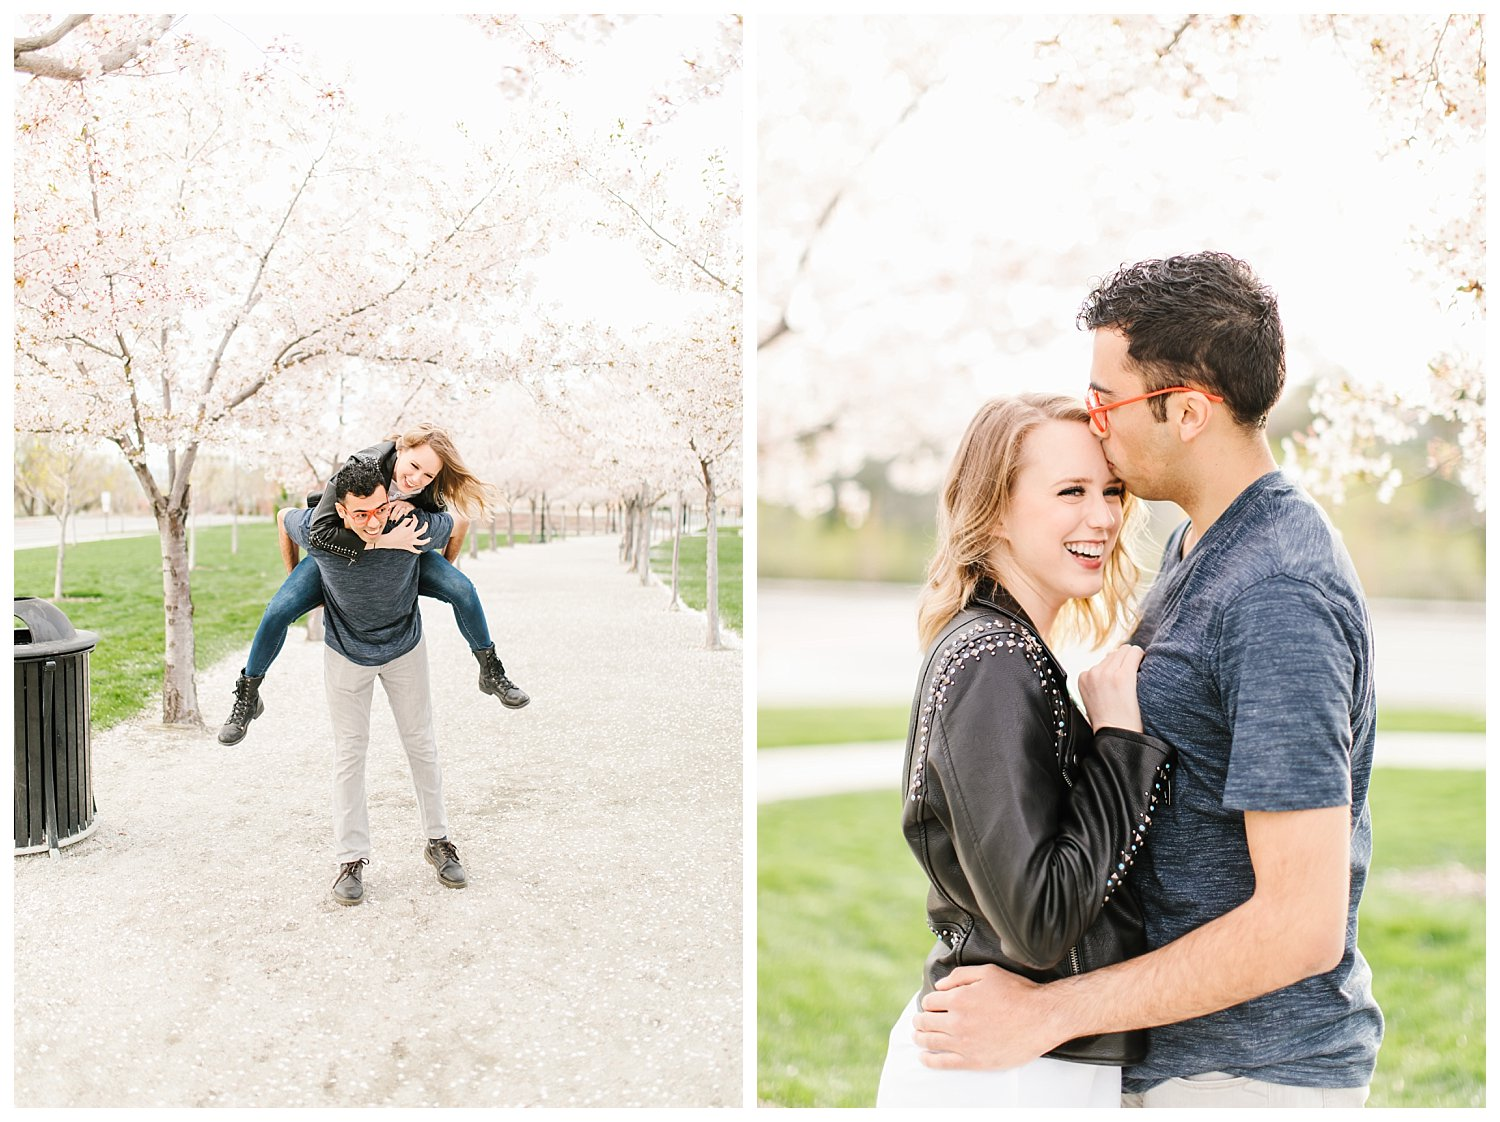 Spring Blossoms Engagement Session 5